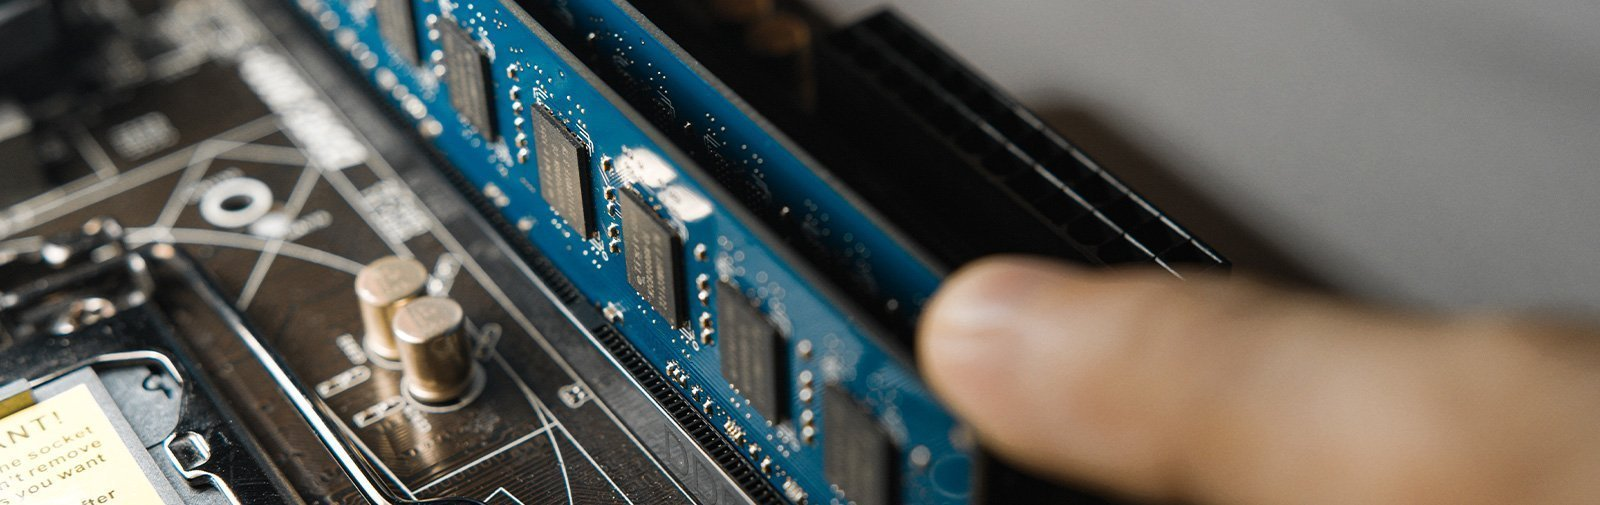 How Much RAM Do I Need in My Laptop?